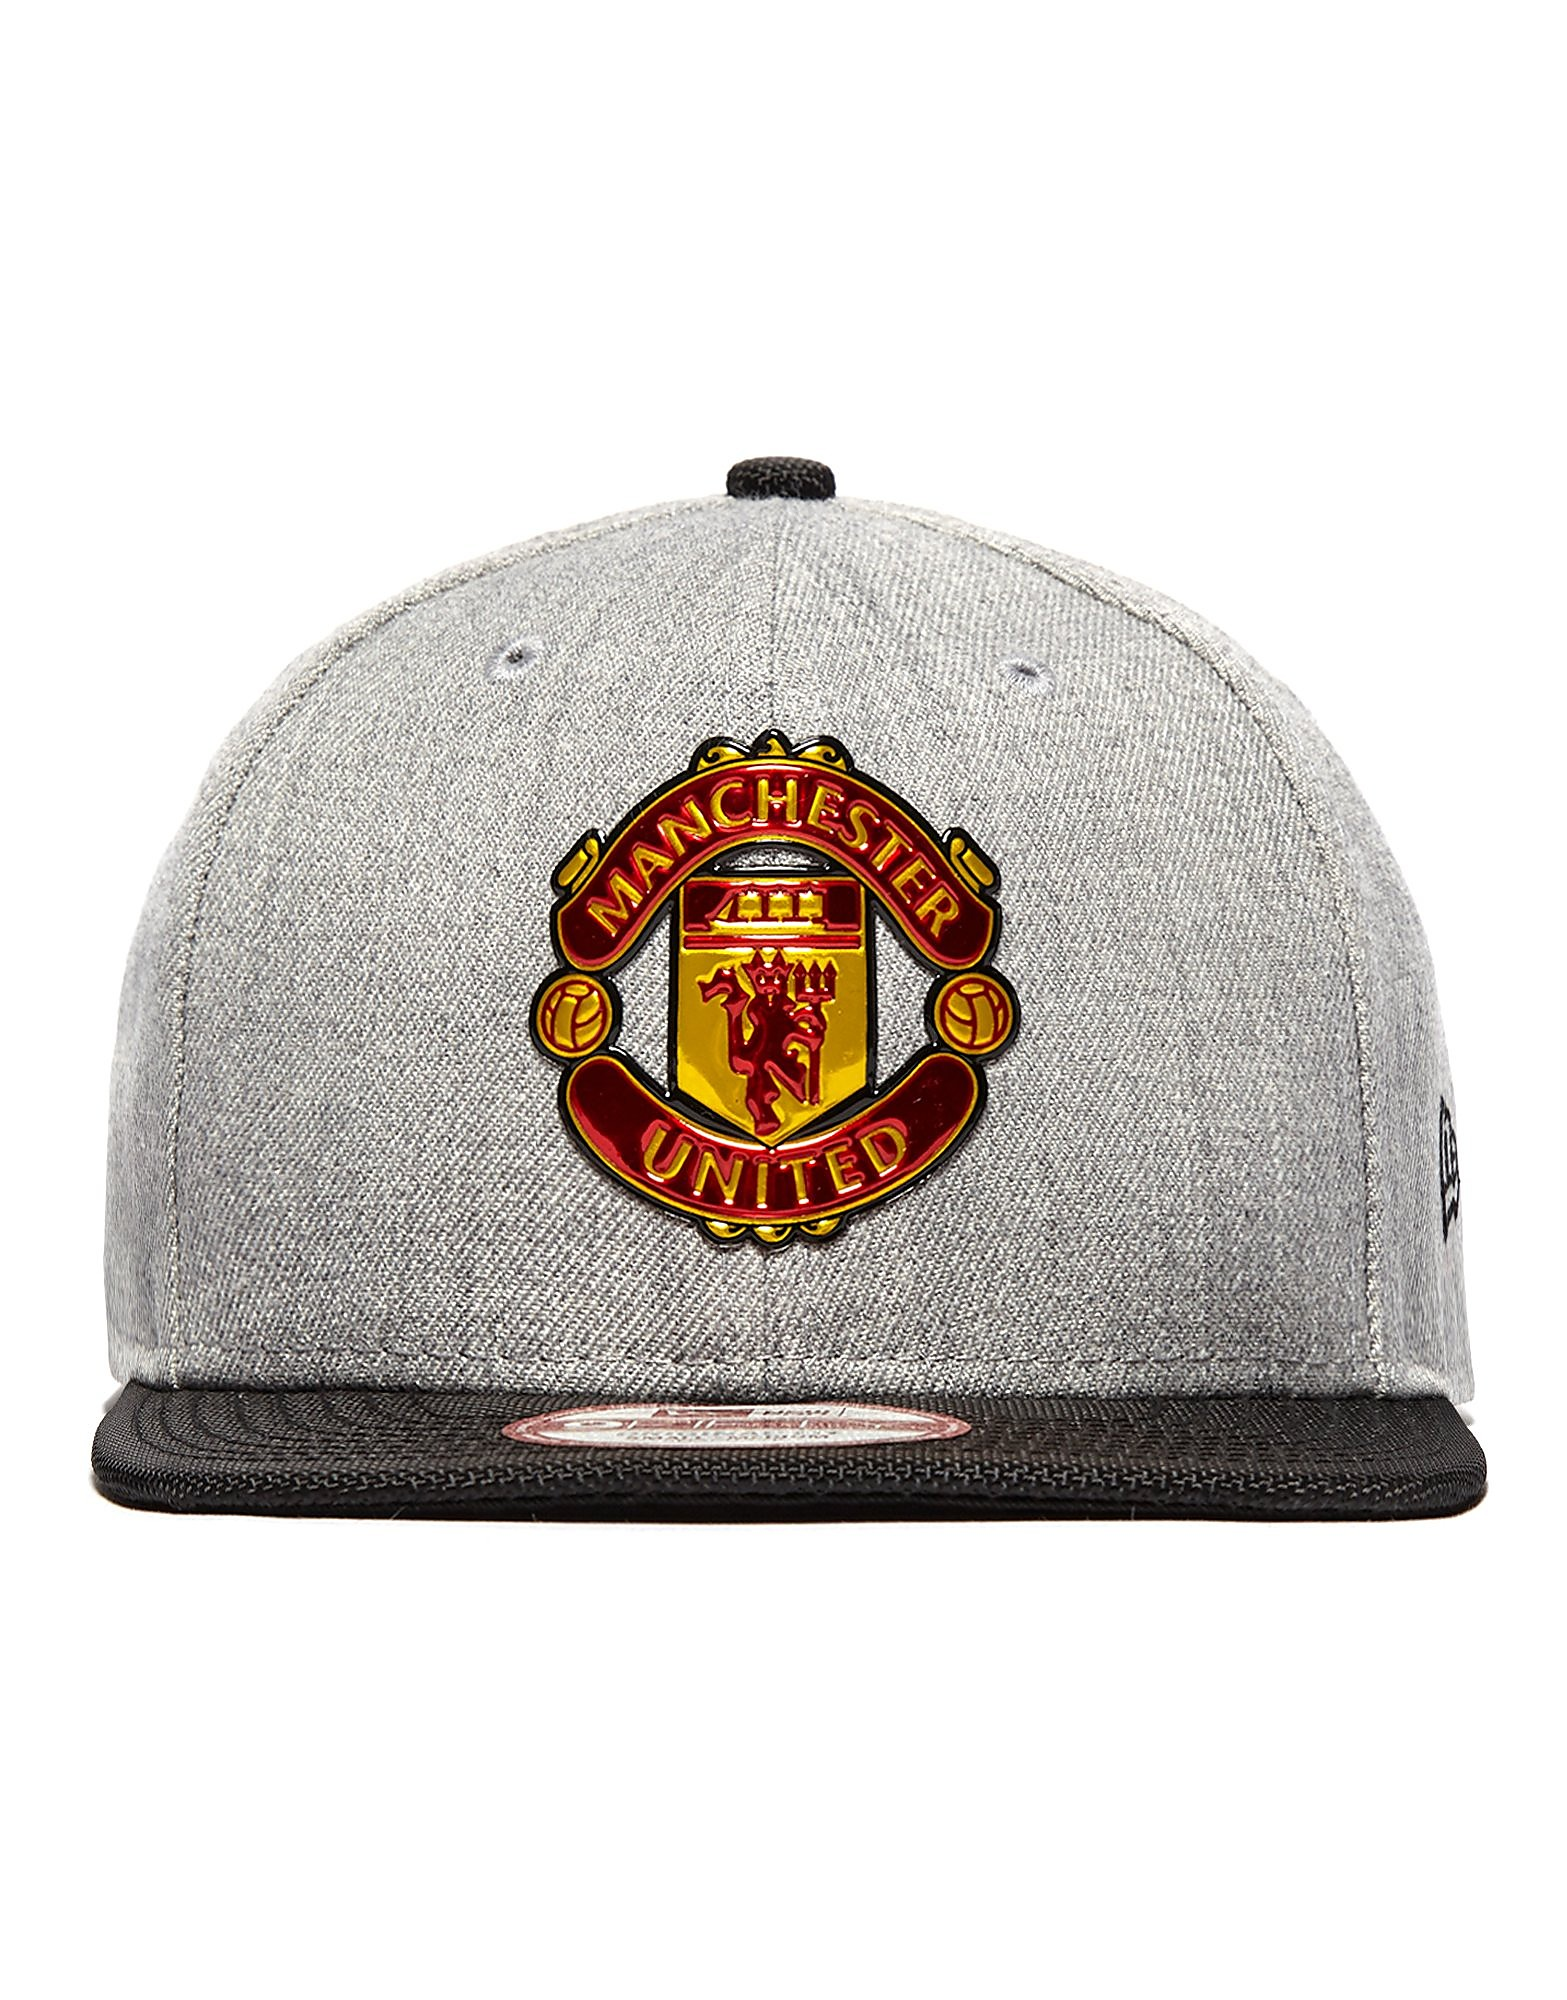 New Era Manchester United 9FIFTY Ballistic Snapback Cap